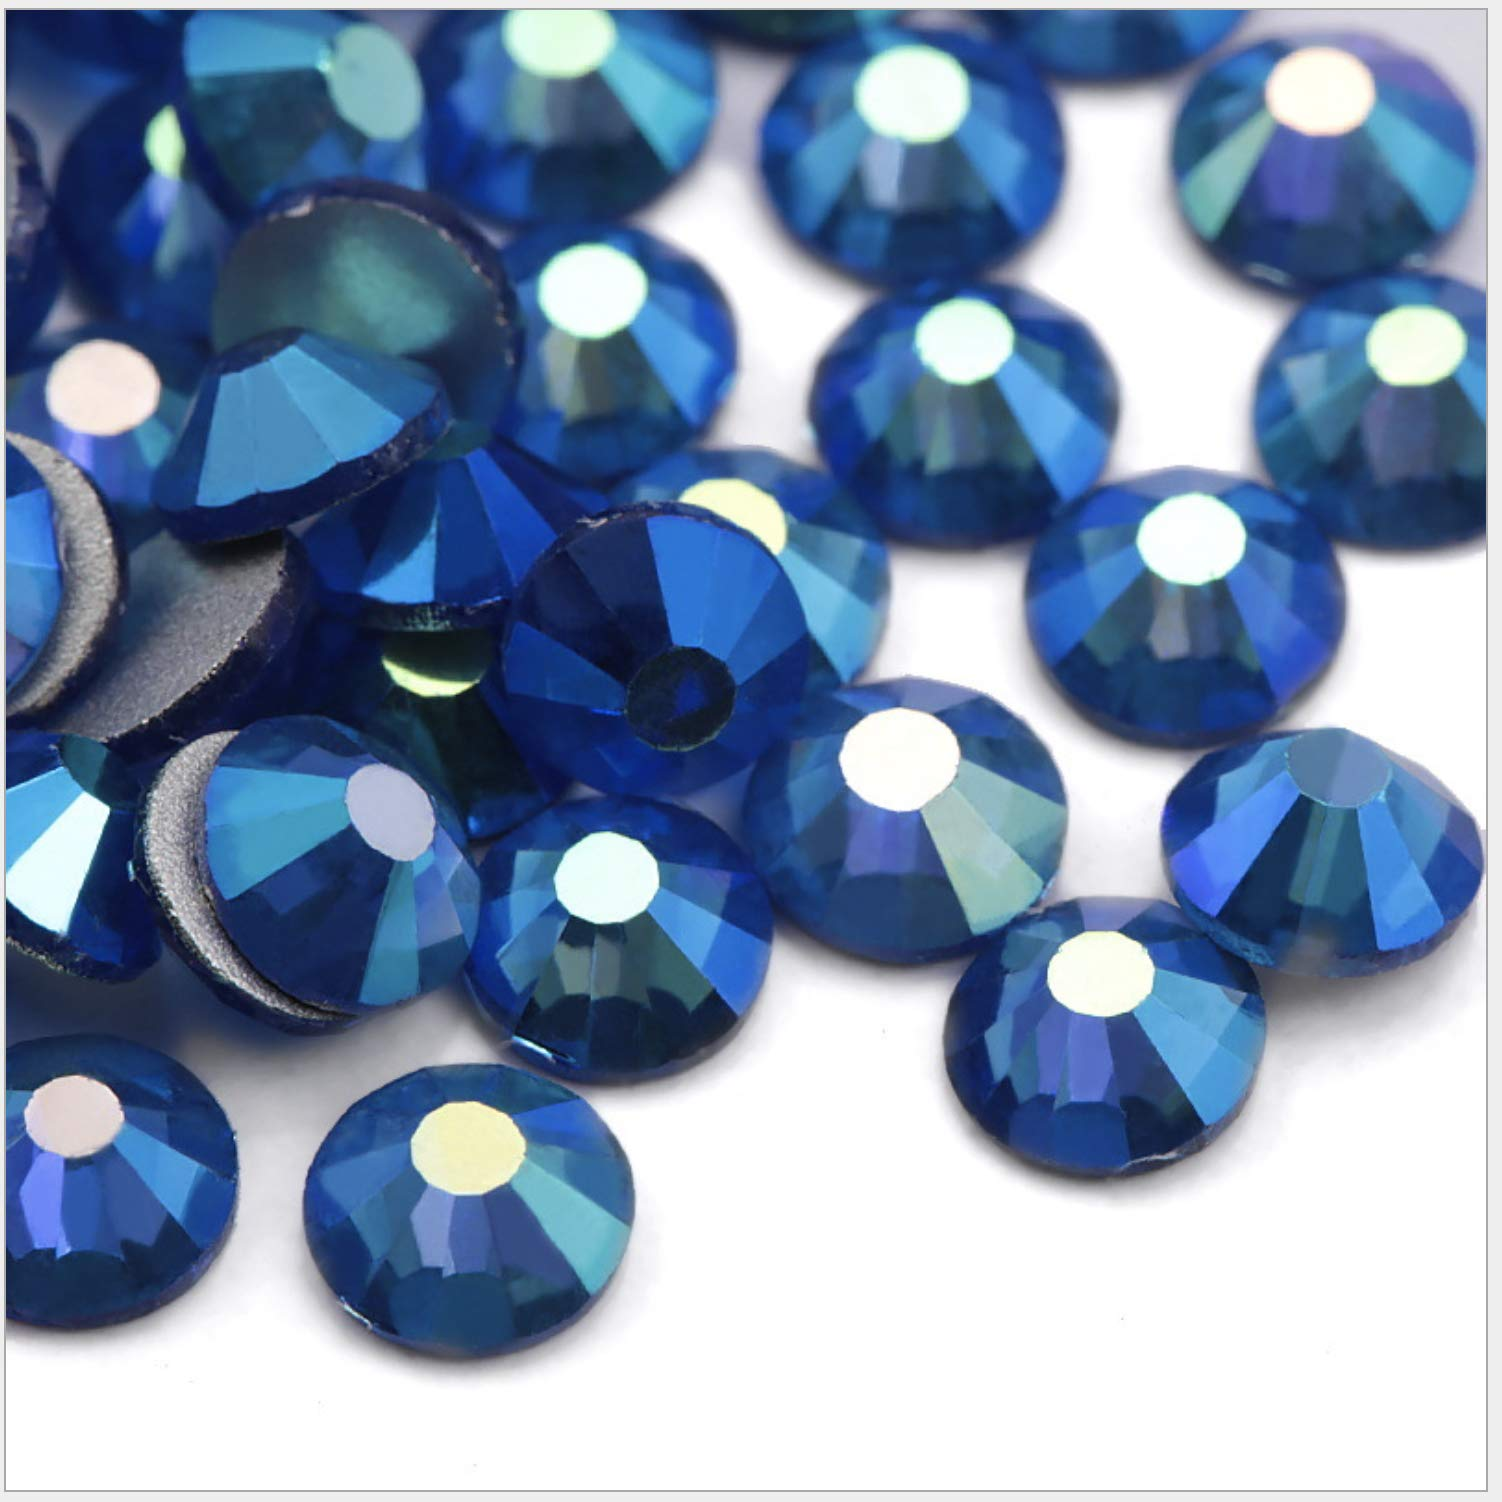 Crystal AB/Crystal Flatback Glass Rhinestones Glue Fix (ss20 (4.8mm) 1440 pcs, Blue AB) by GreatDeal68